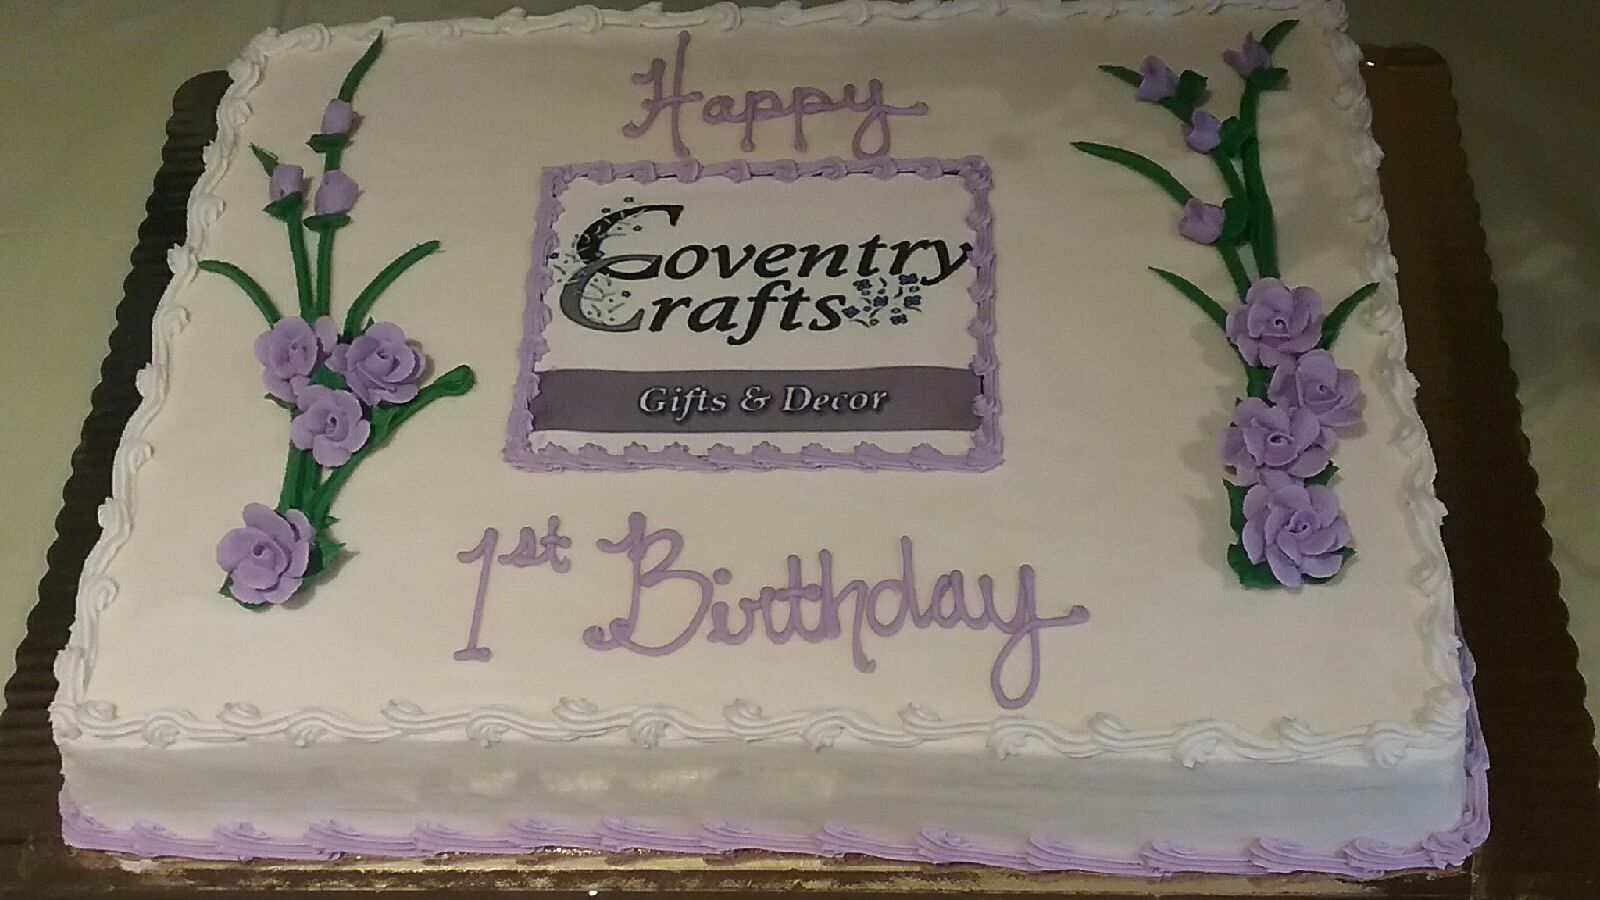 First Birthday Cake April 13, 2019 (2)